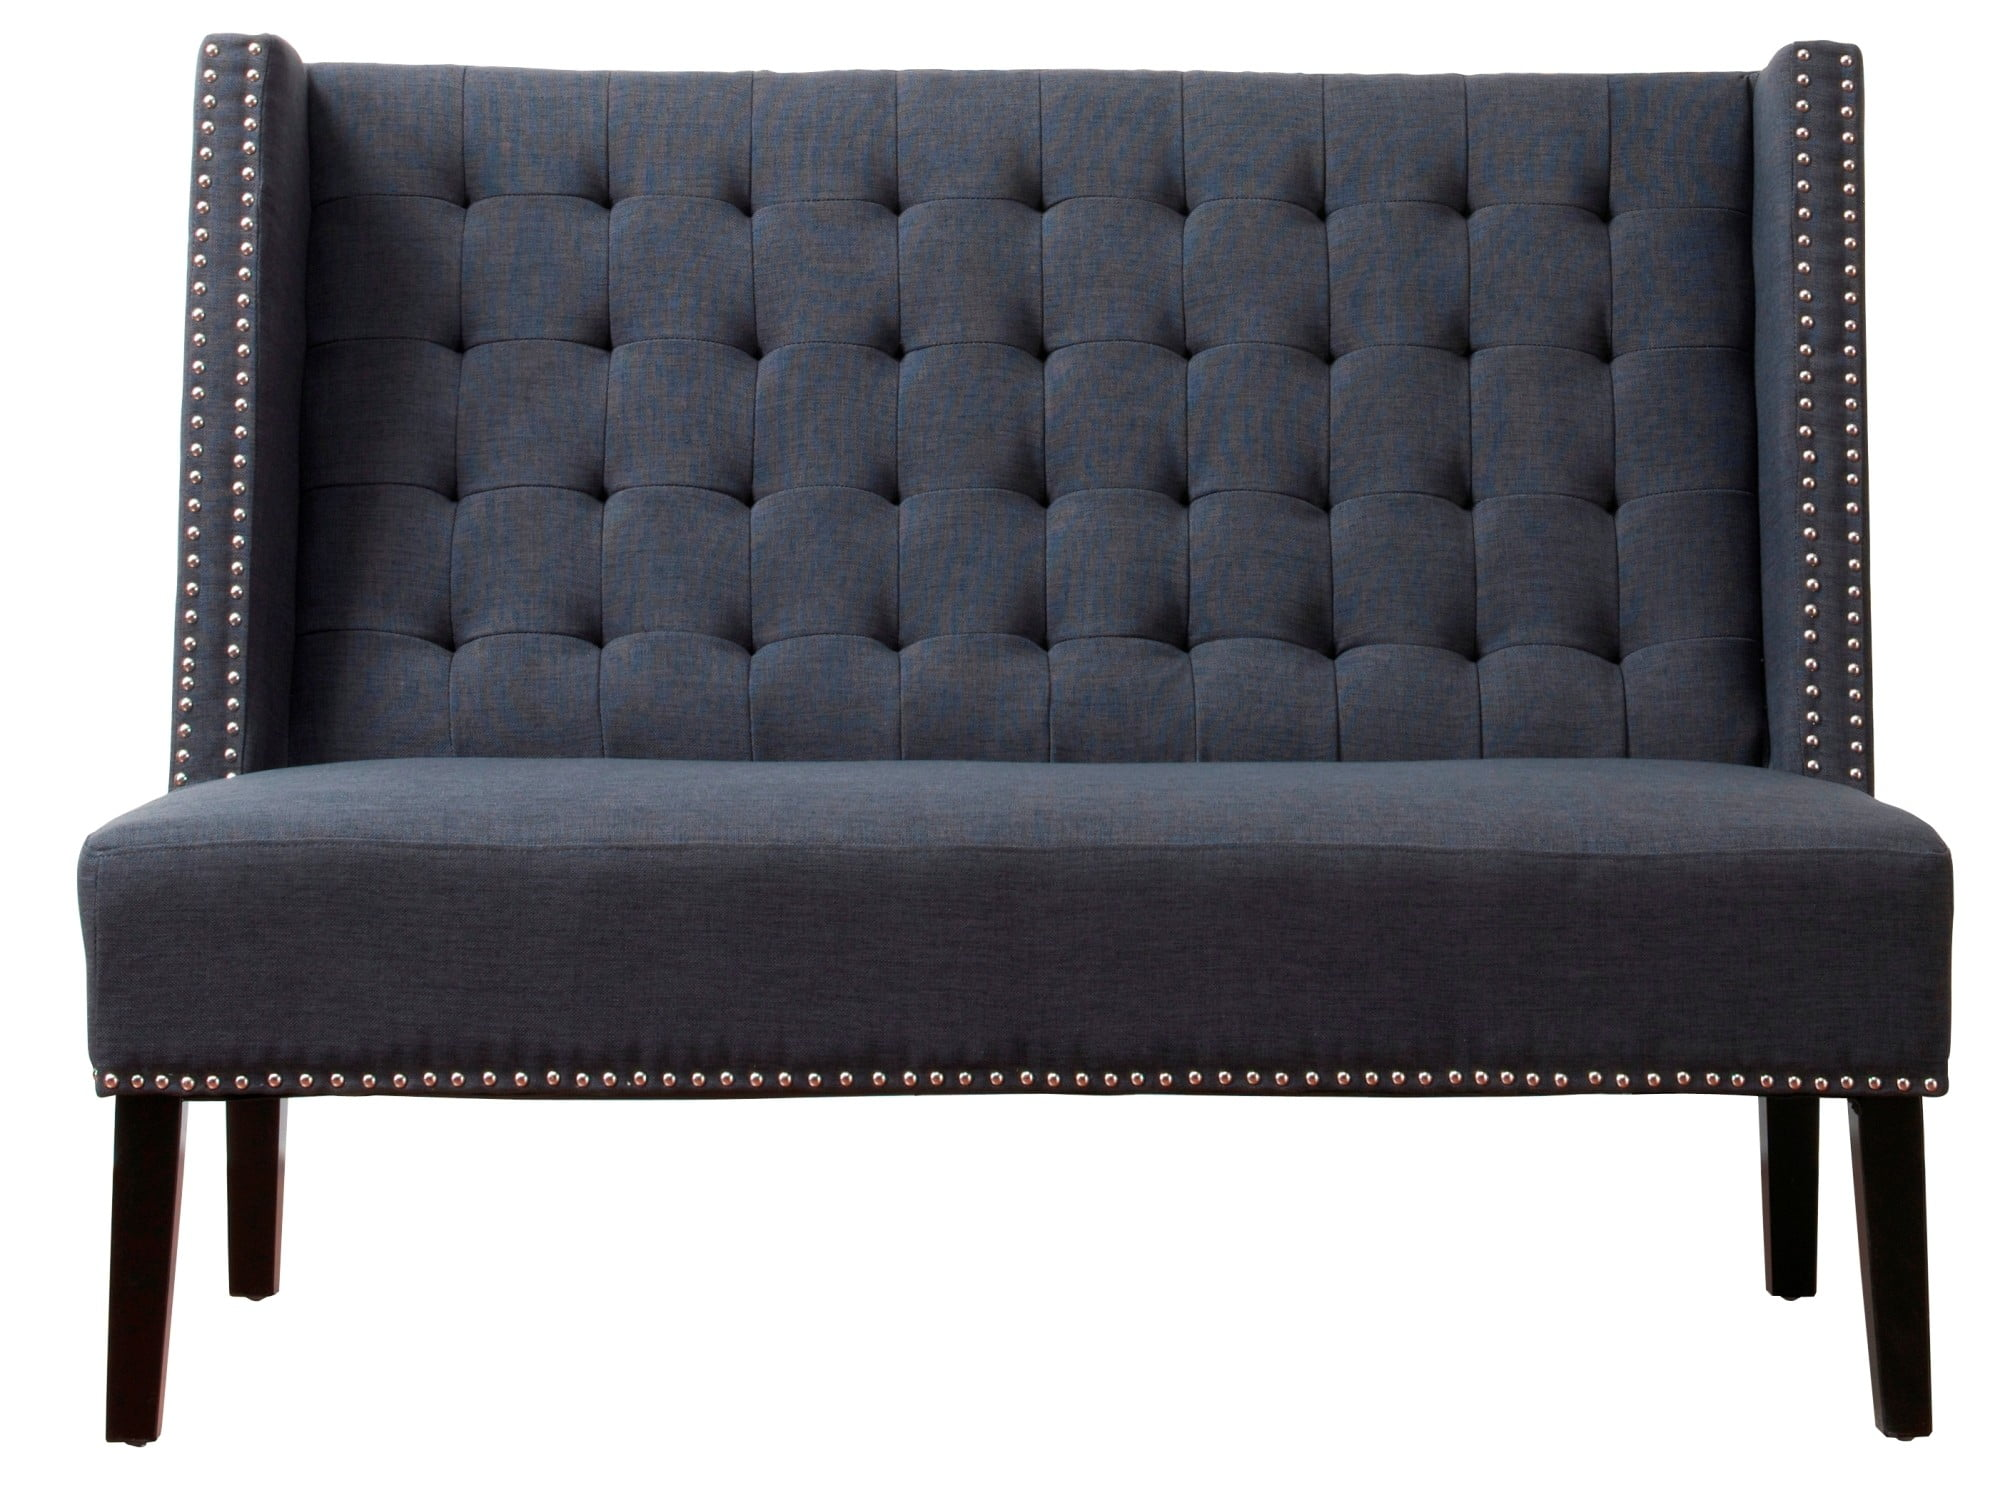 Halifax Grey Linen Banquette Bench from TOV (TOV